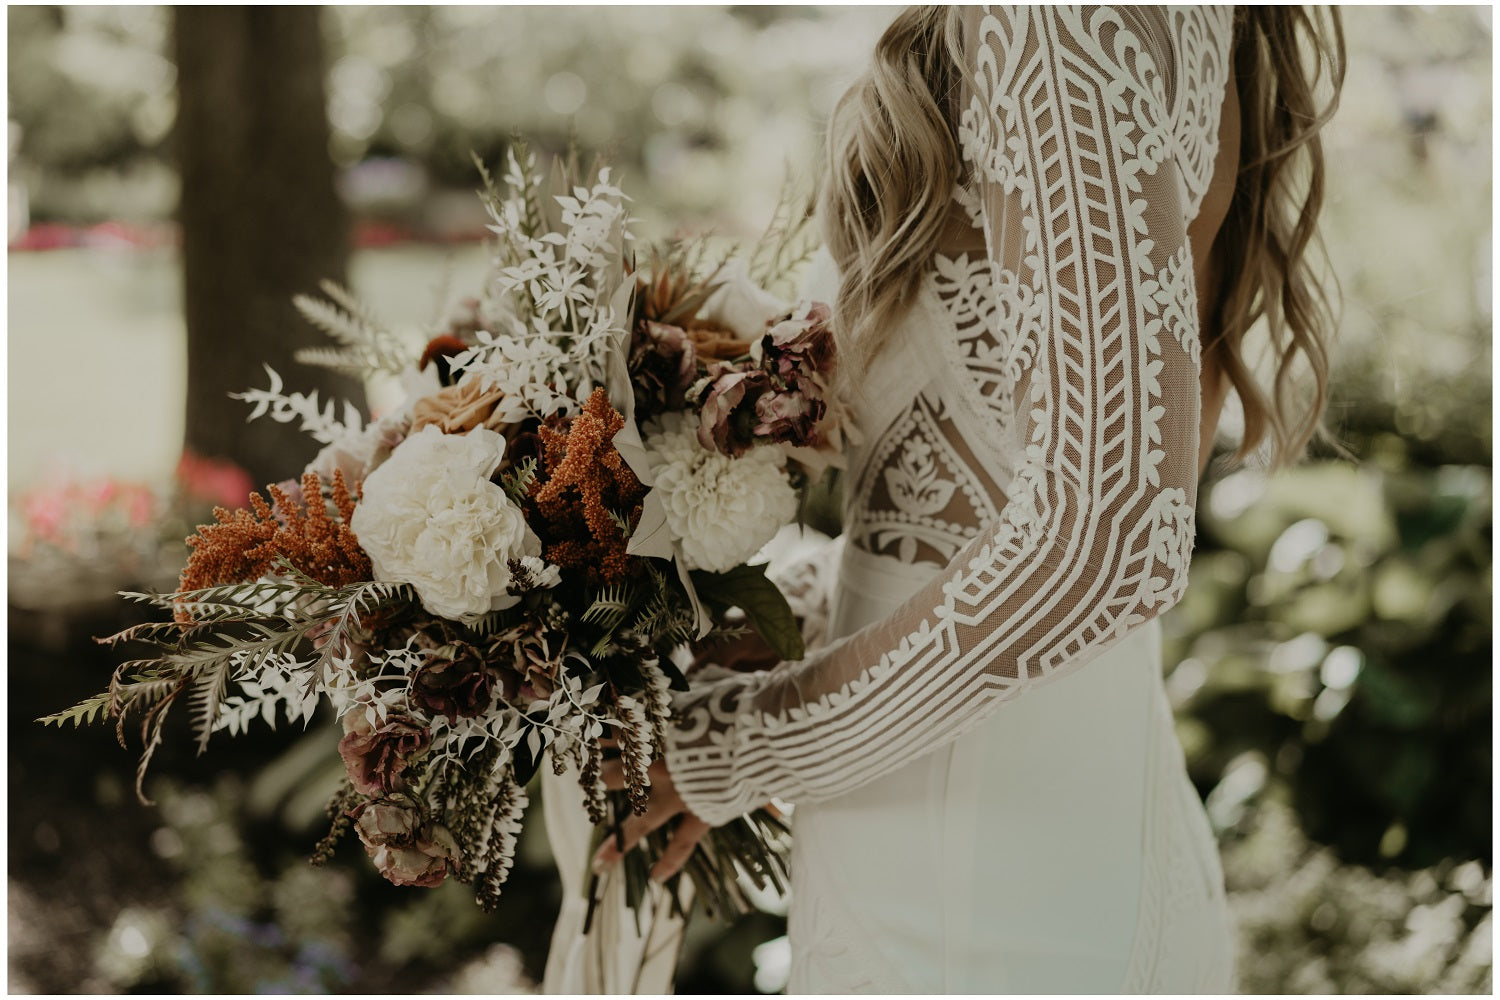 Dried and fresh flower boho bouquet dress by Lovers Society from Lovely Bride Rochester